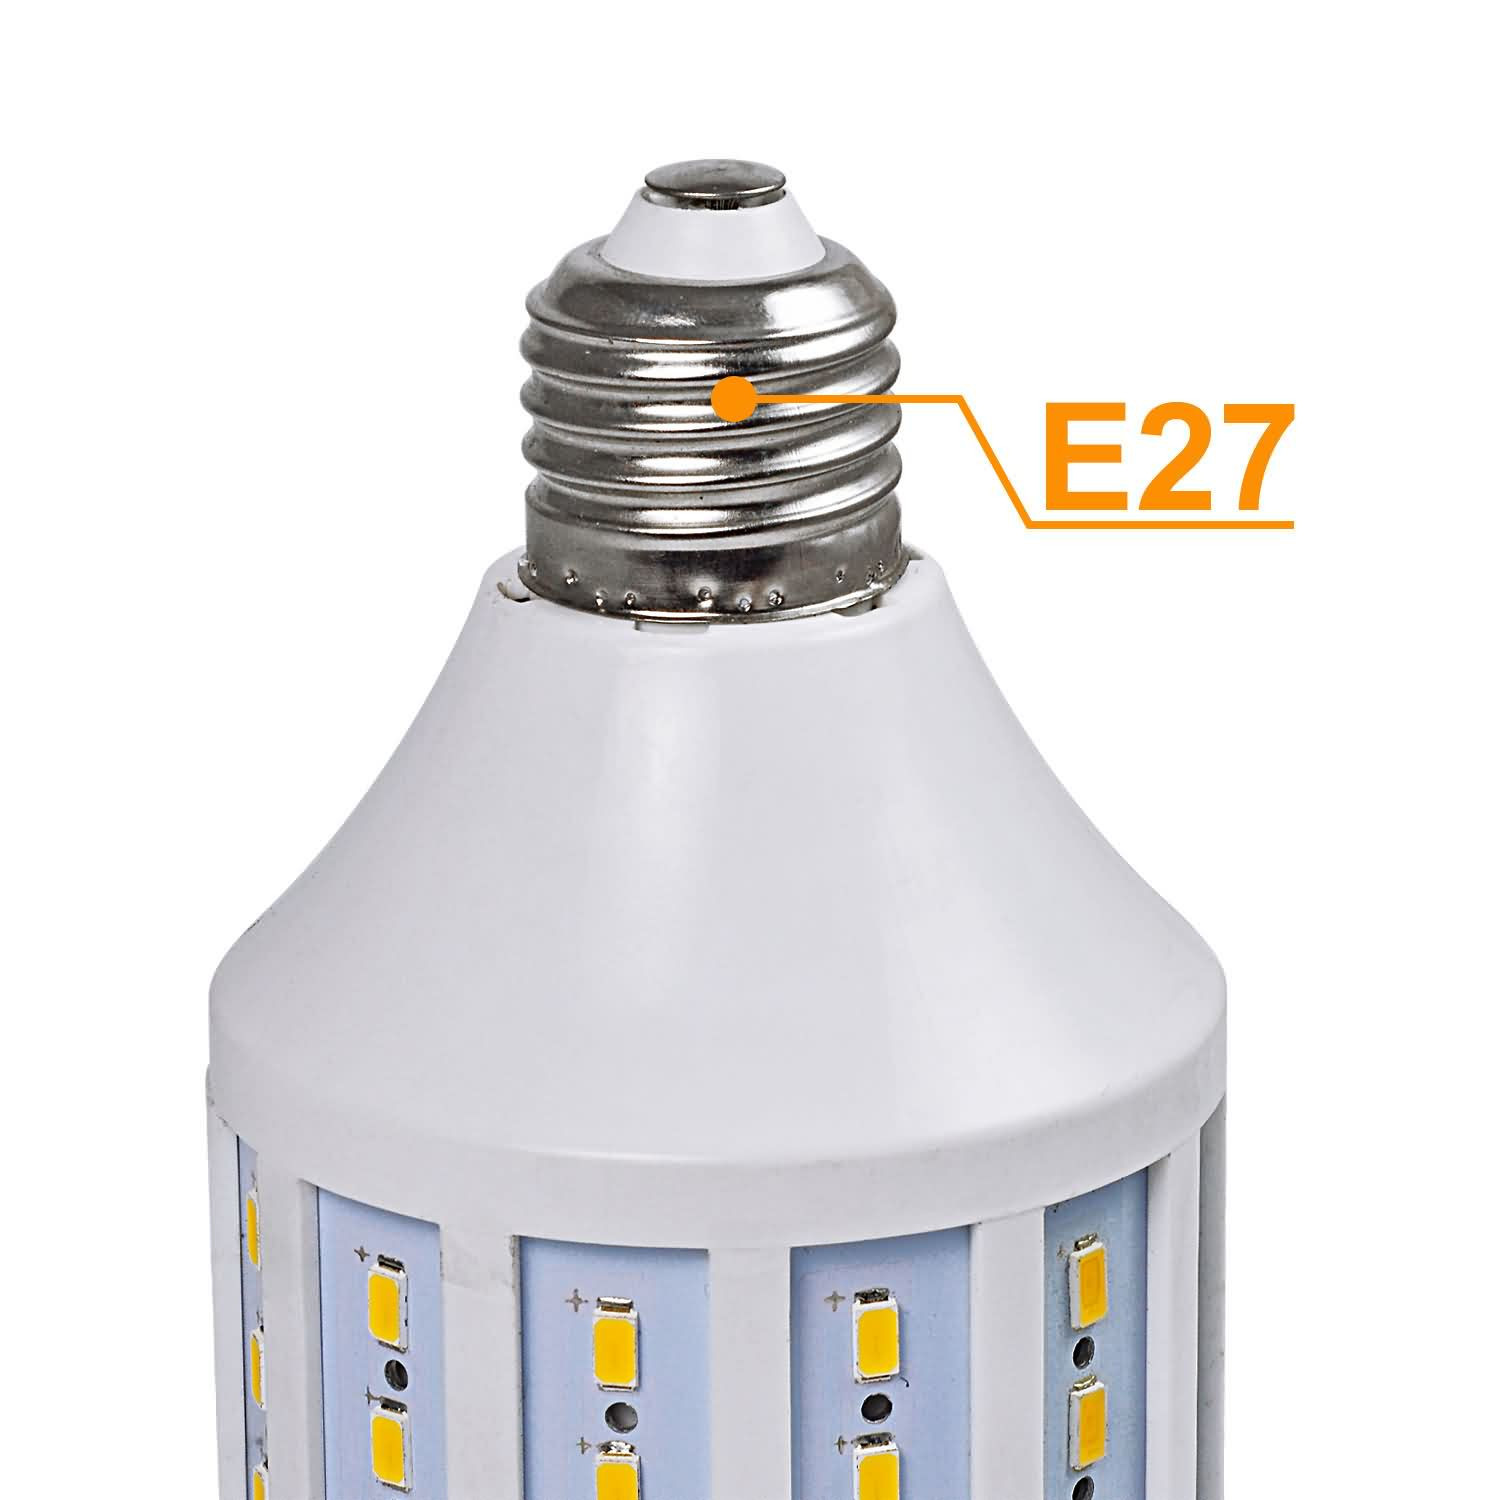 e27 20w dimmable led corn light 98x 5730 smd leds led bulb. Black Bedroom Furniture Sets. Home Design Ideas